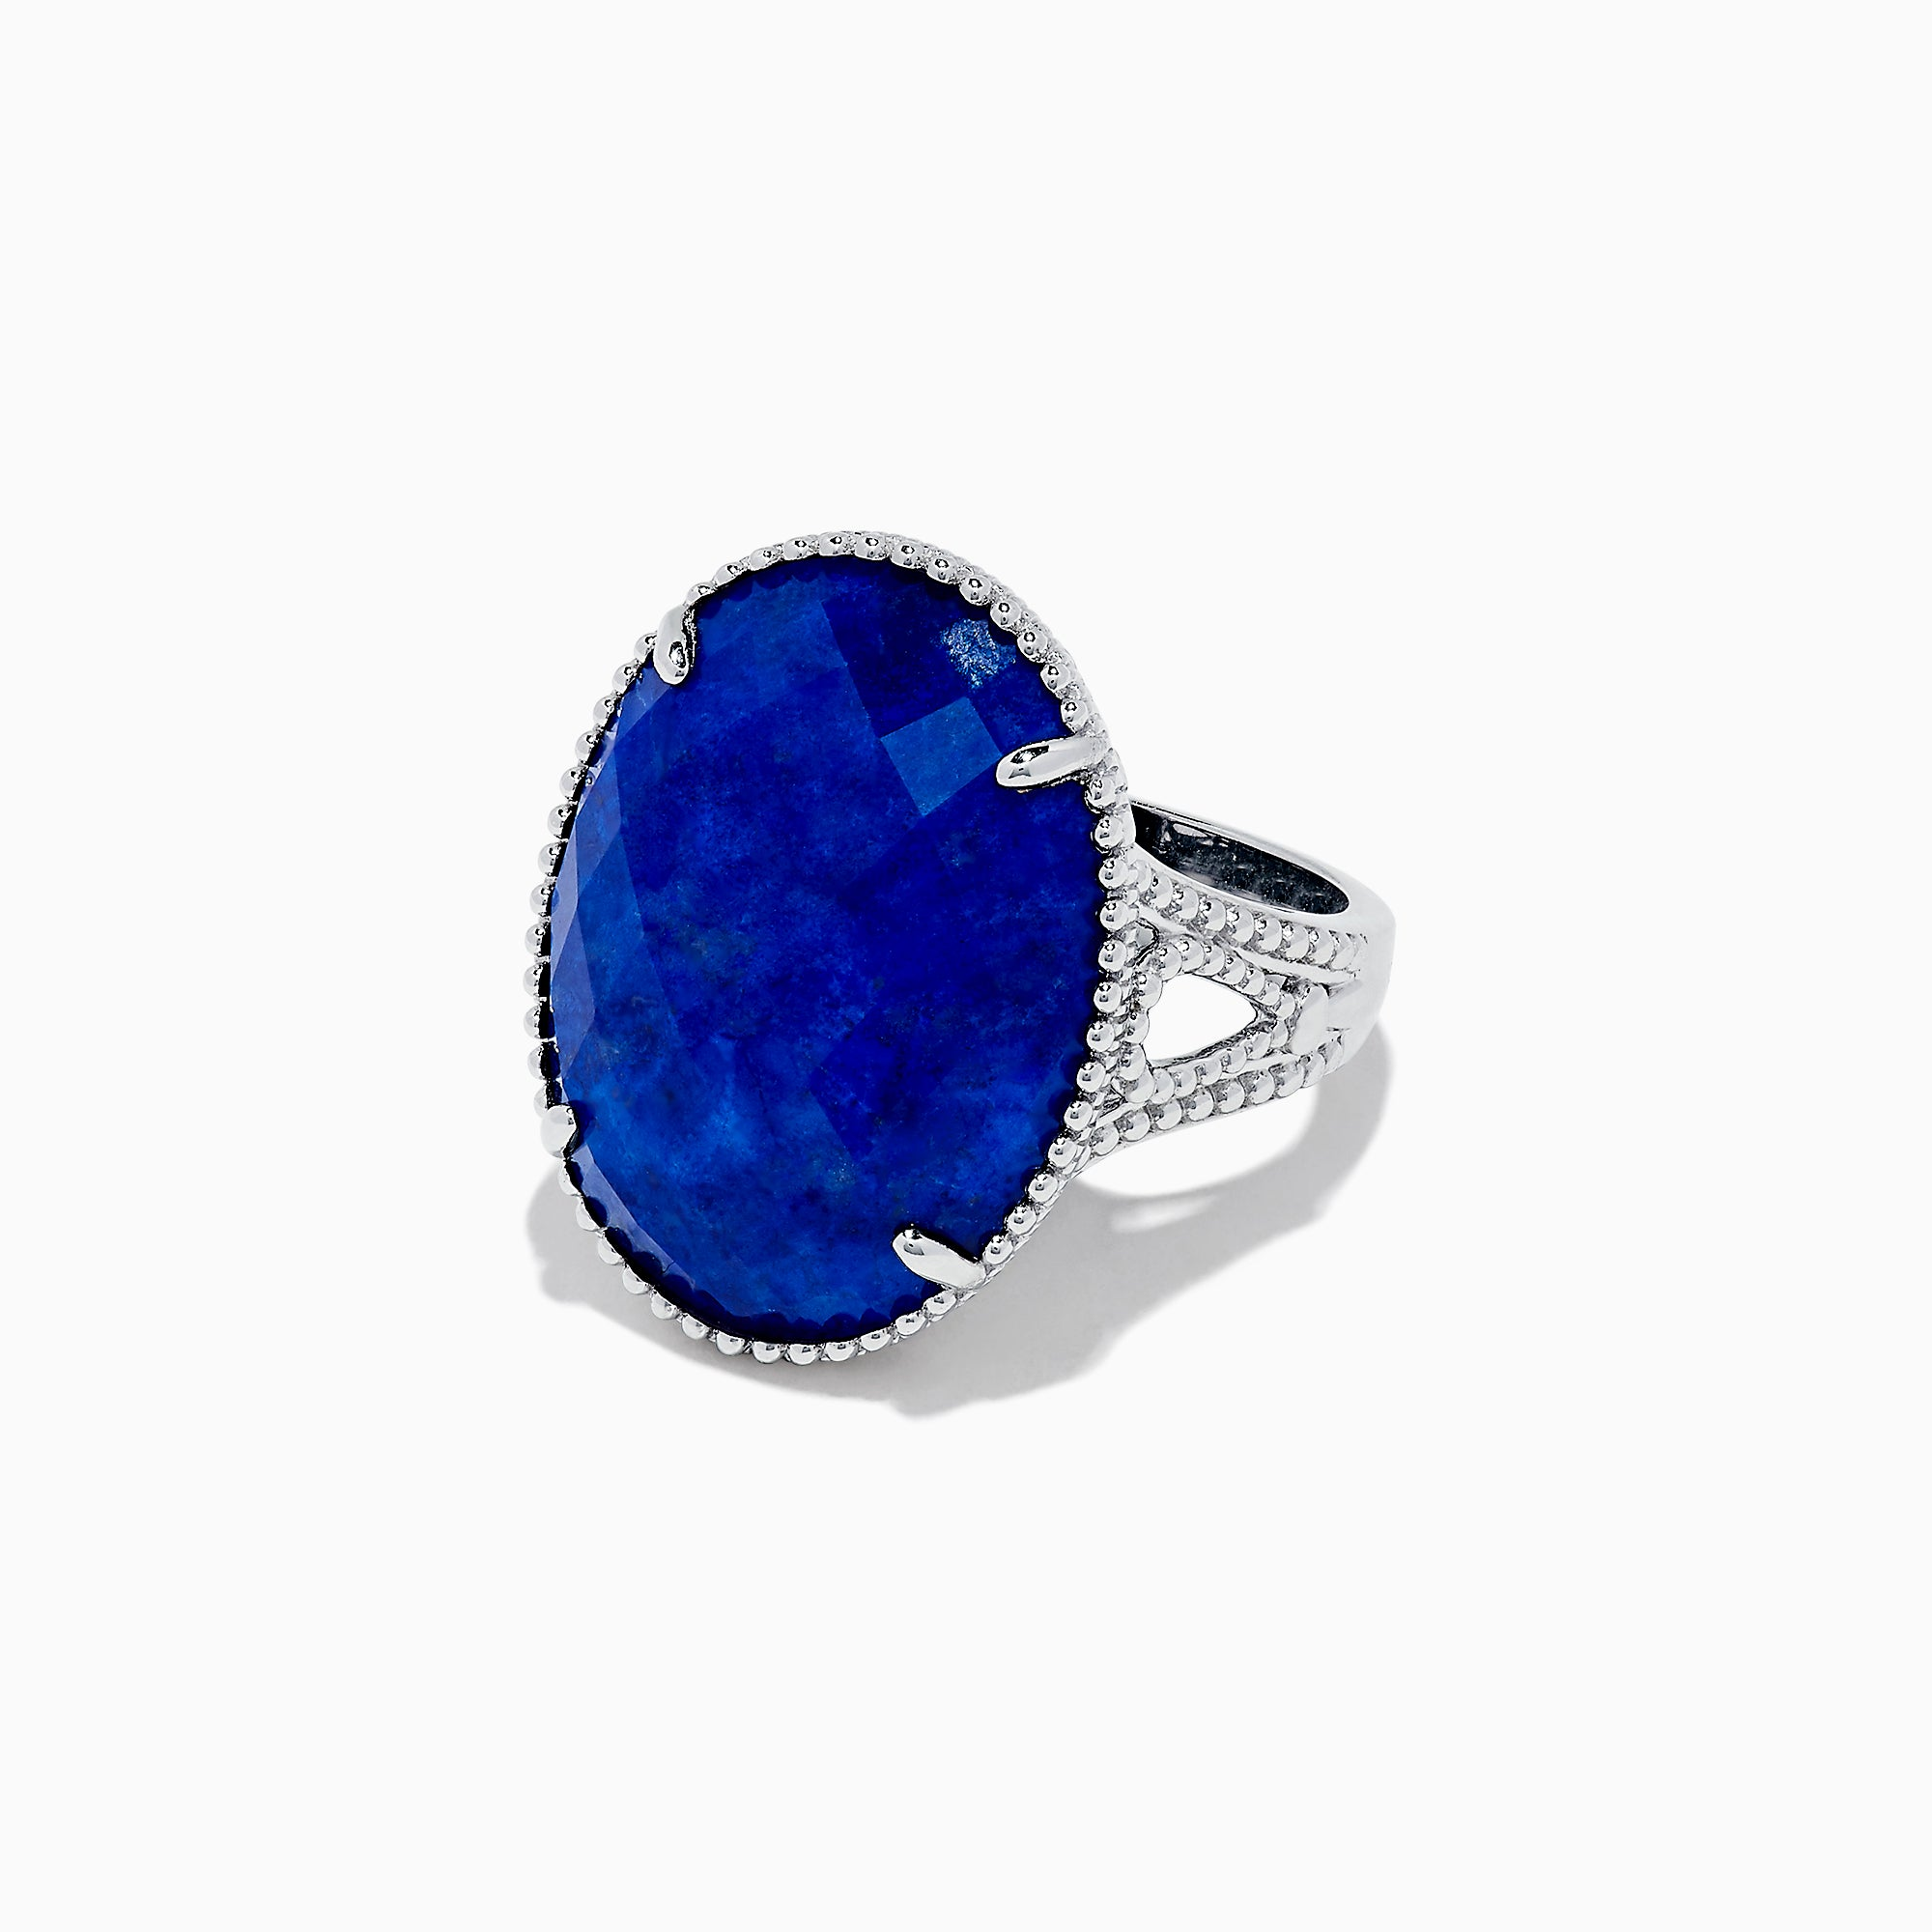 Effy 925 Sterling Silver Lapis Lazuli Cocktail Ring, 13.85 TCW